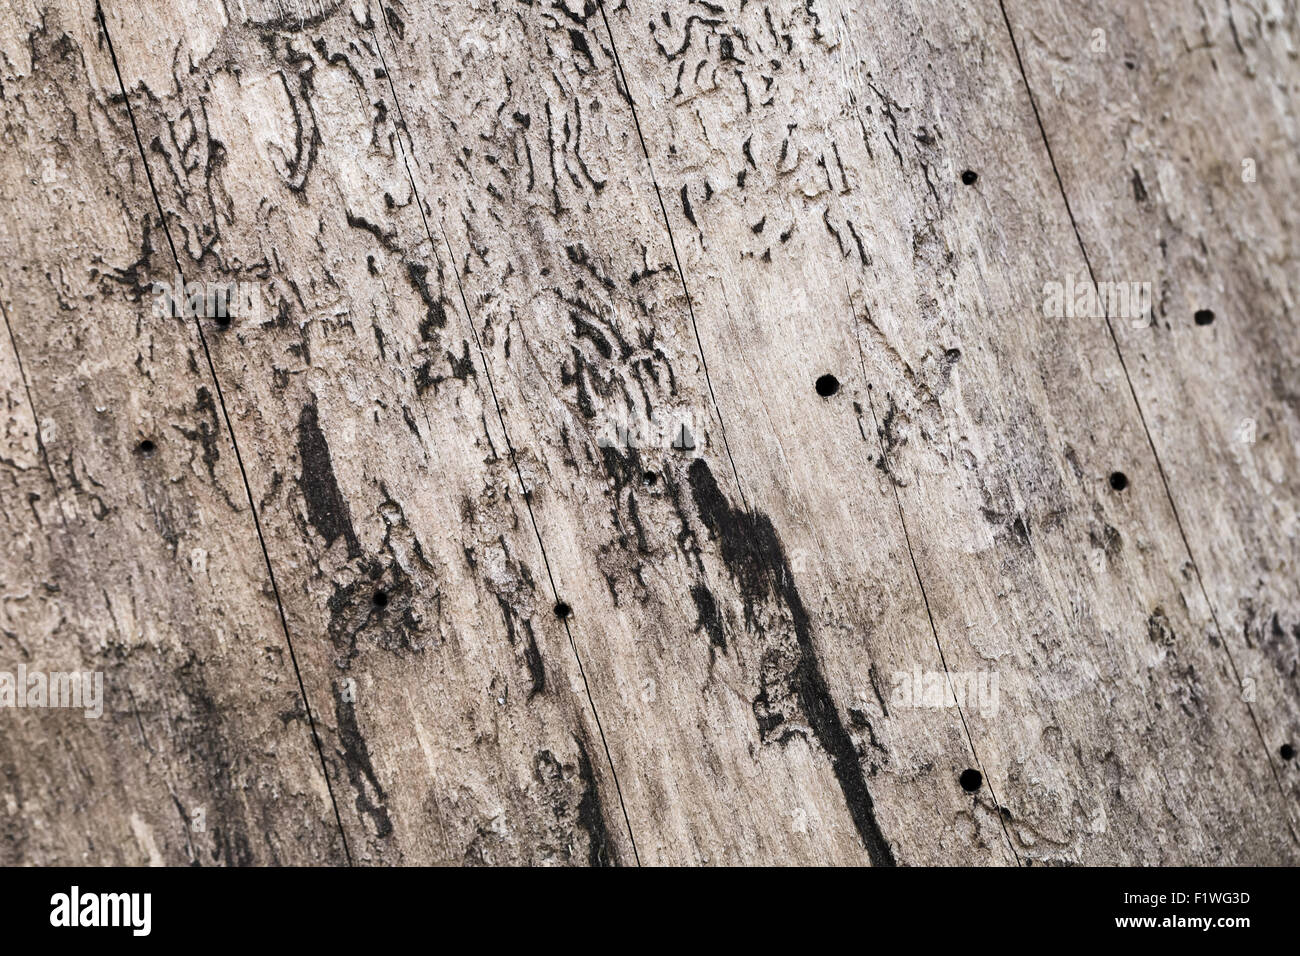 Old wooden bark surface with natural holes, background photo texture - Stock Image